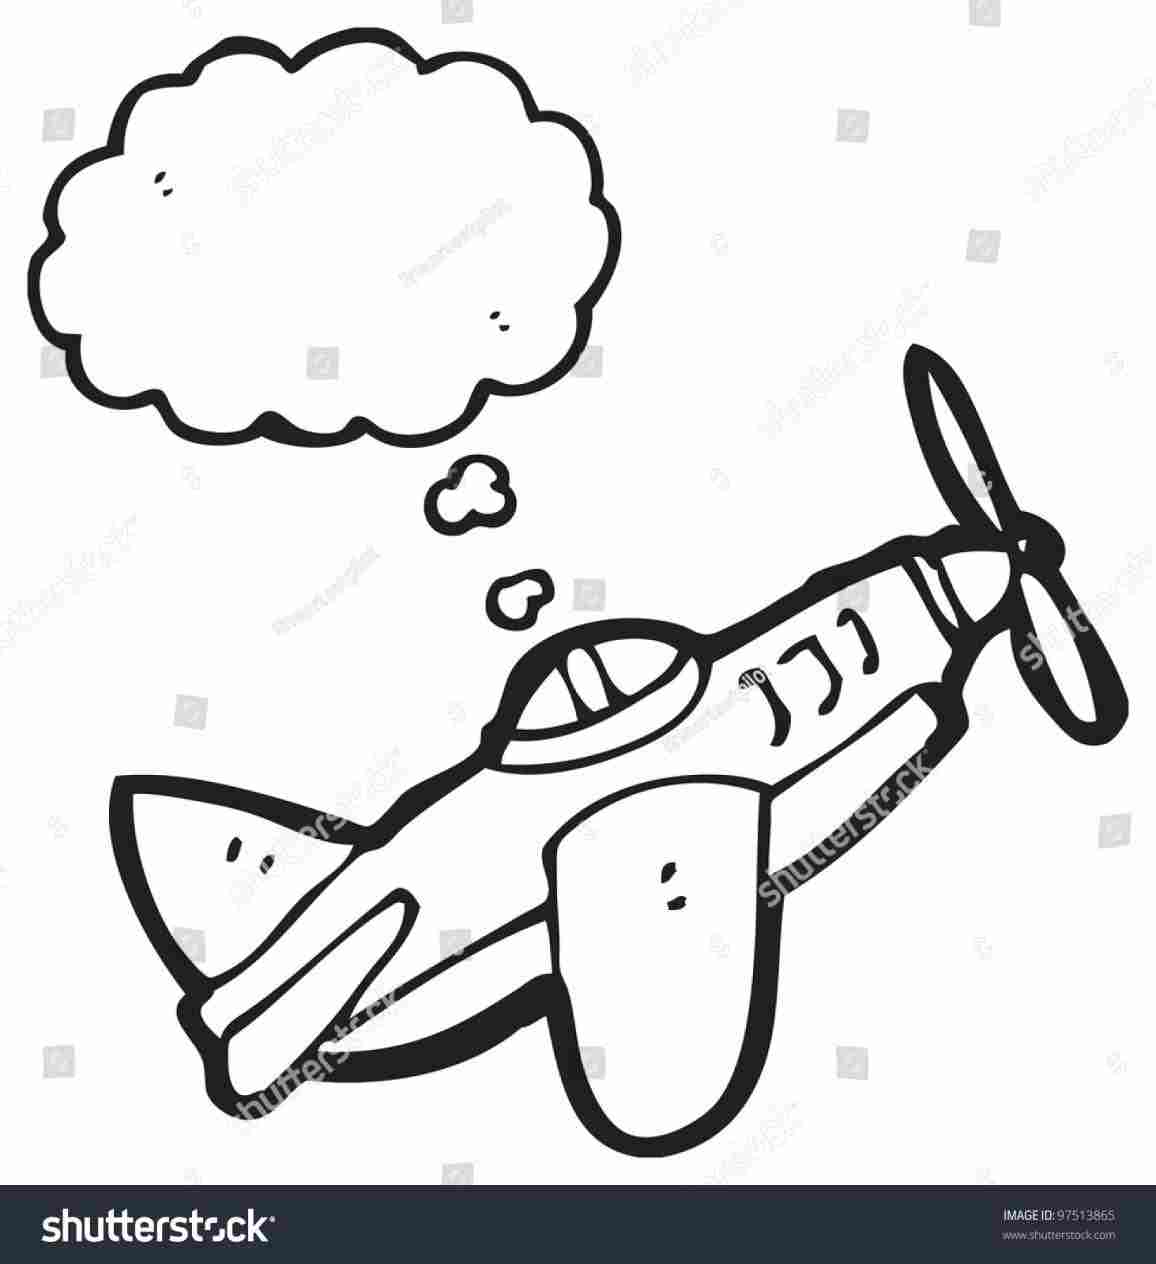 1156x1264 drawing easy plane gdpicture us